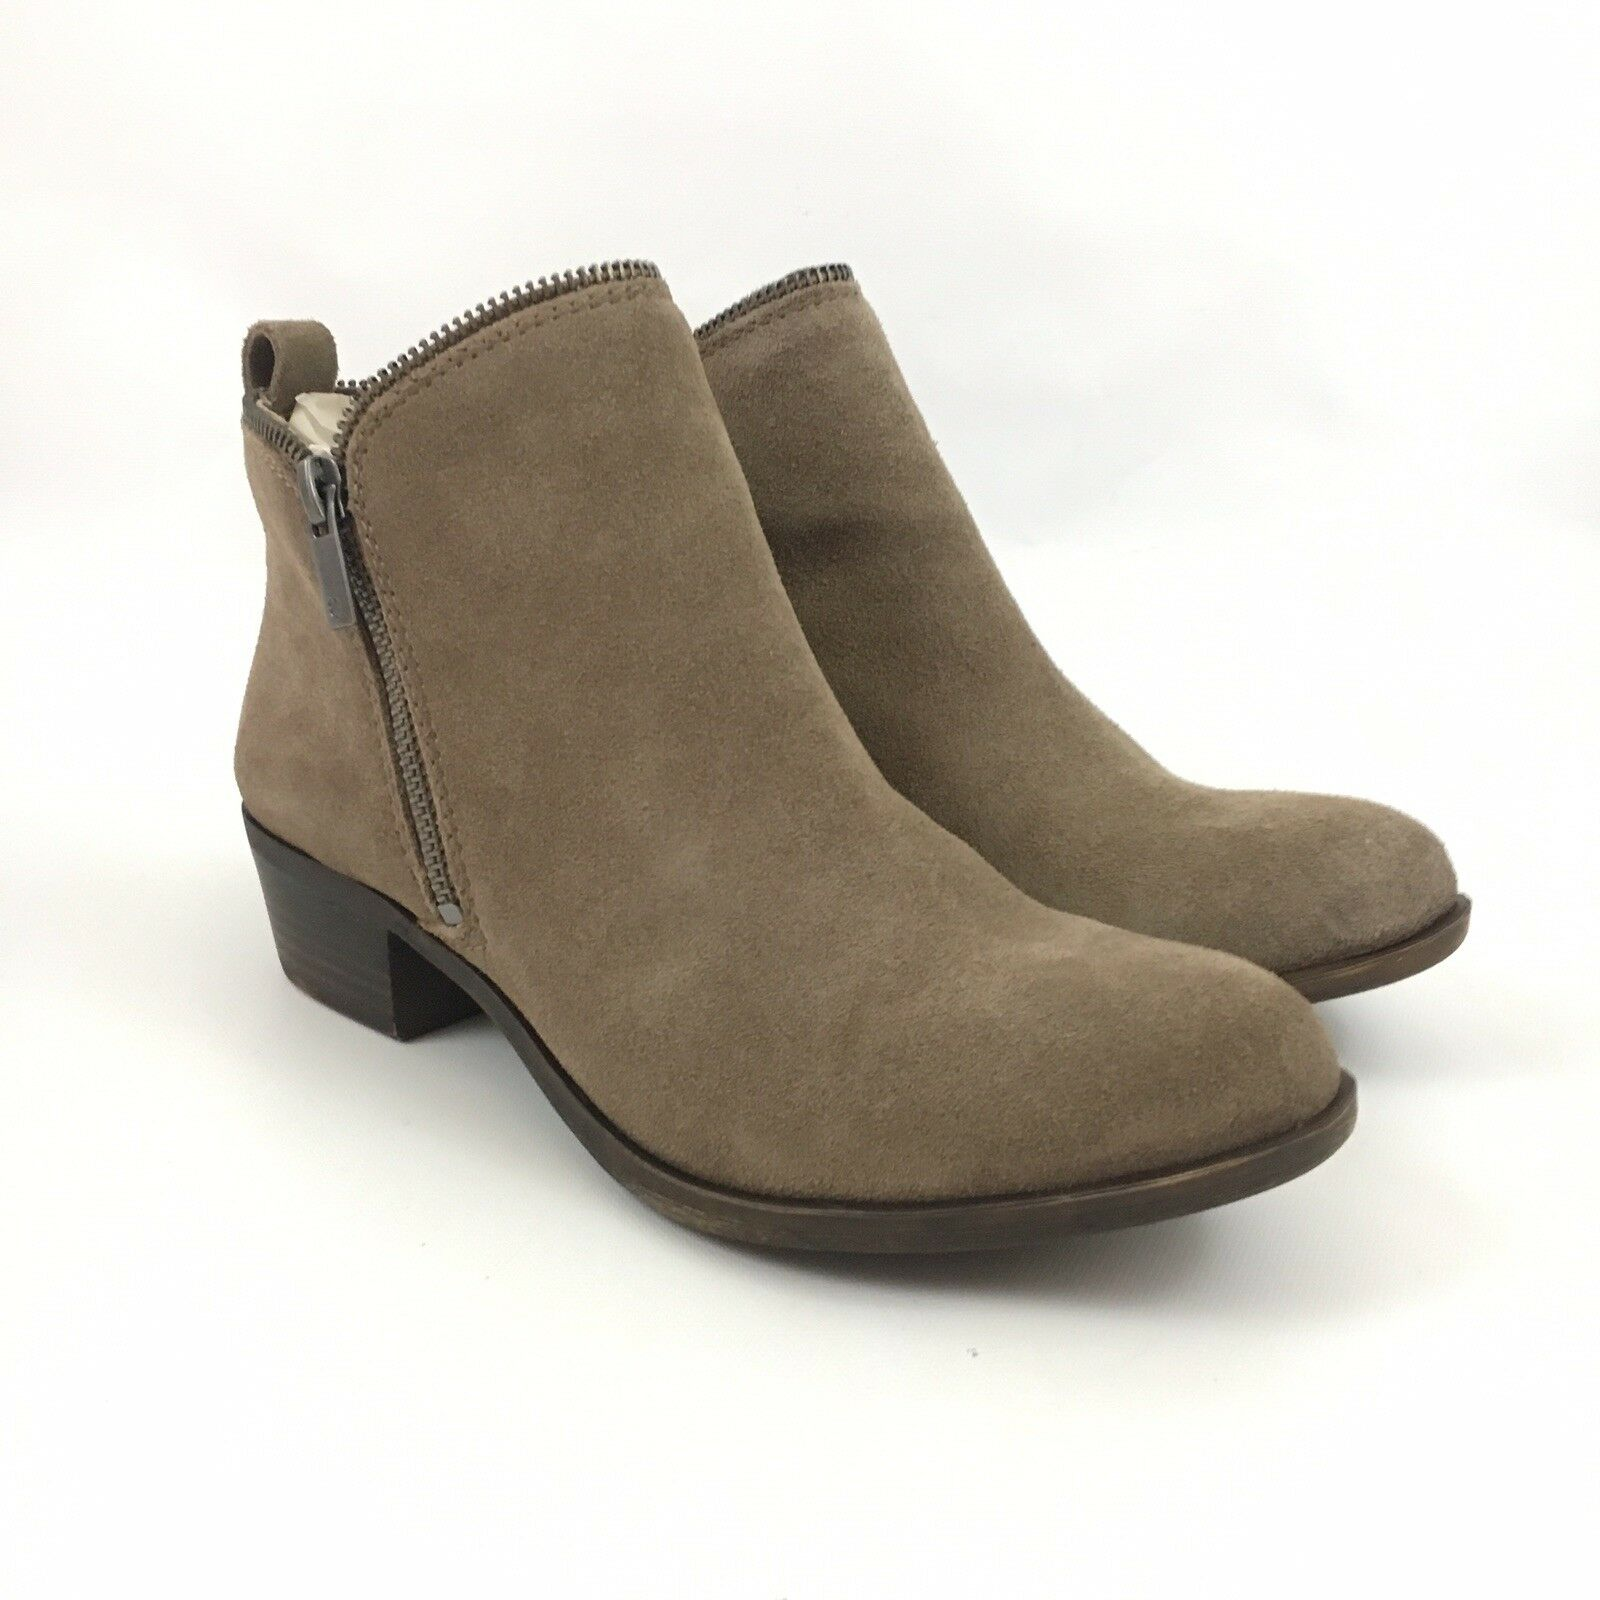 Lucky Lucky Lucky Brand Bartalino Womens Ankle Boots Brown Suede 0c9bfa